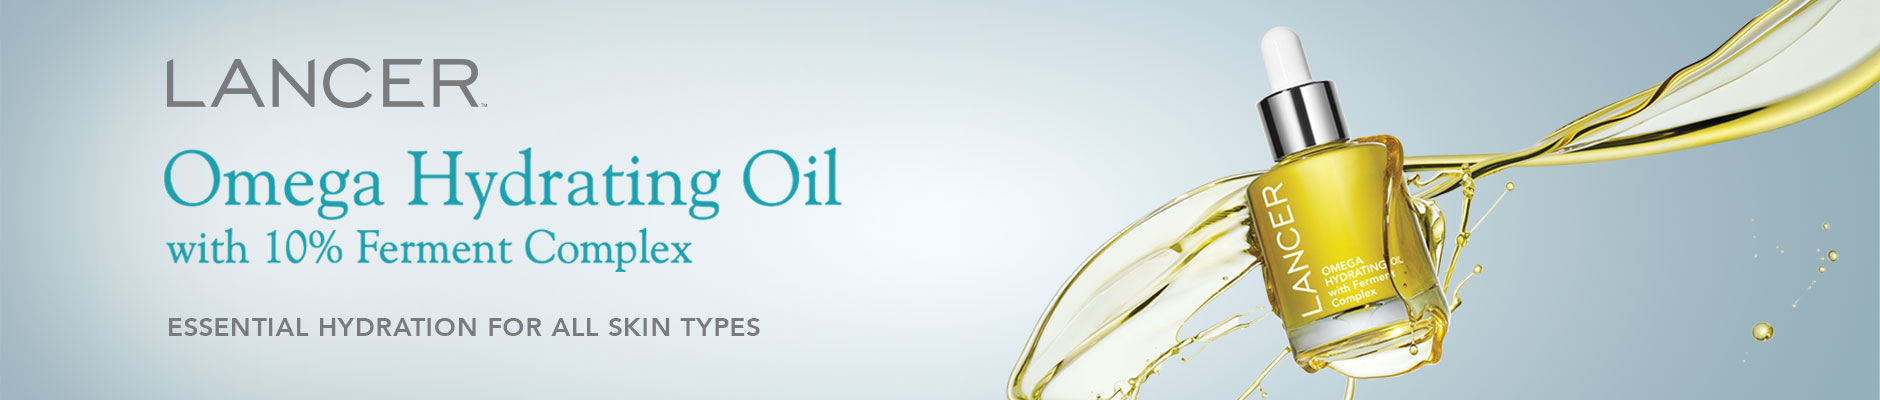 Lancer: Omega Hydrating Oil with 10% Ferment Complex - Essential hydration for all skin types